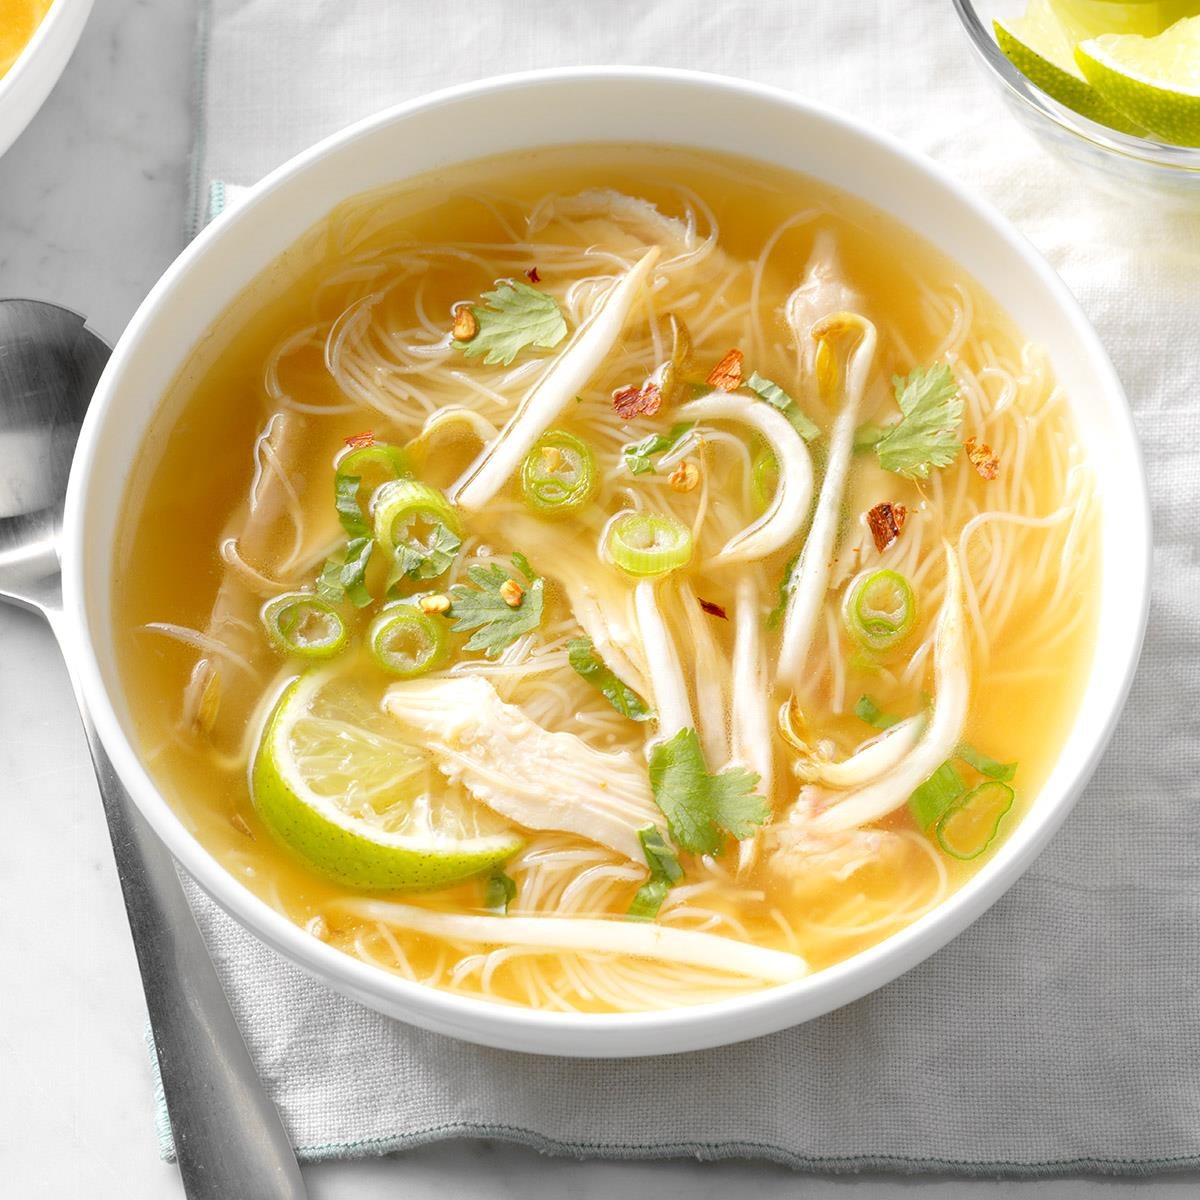 How To Make A Noodle Soup With Chicken